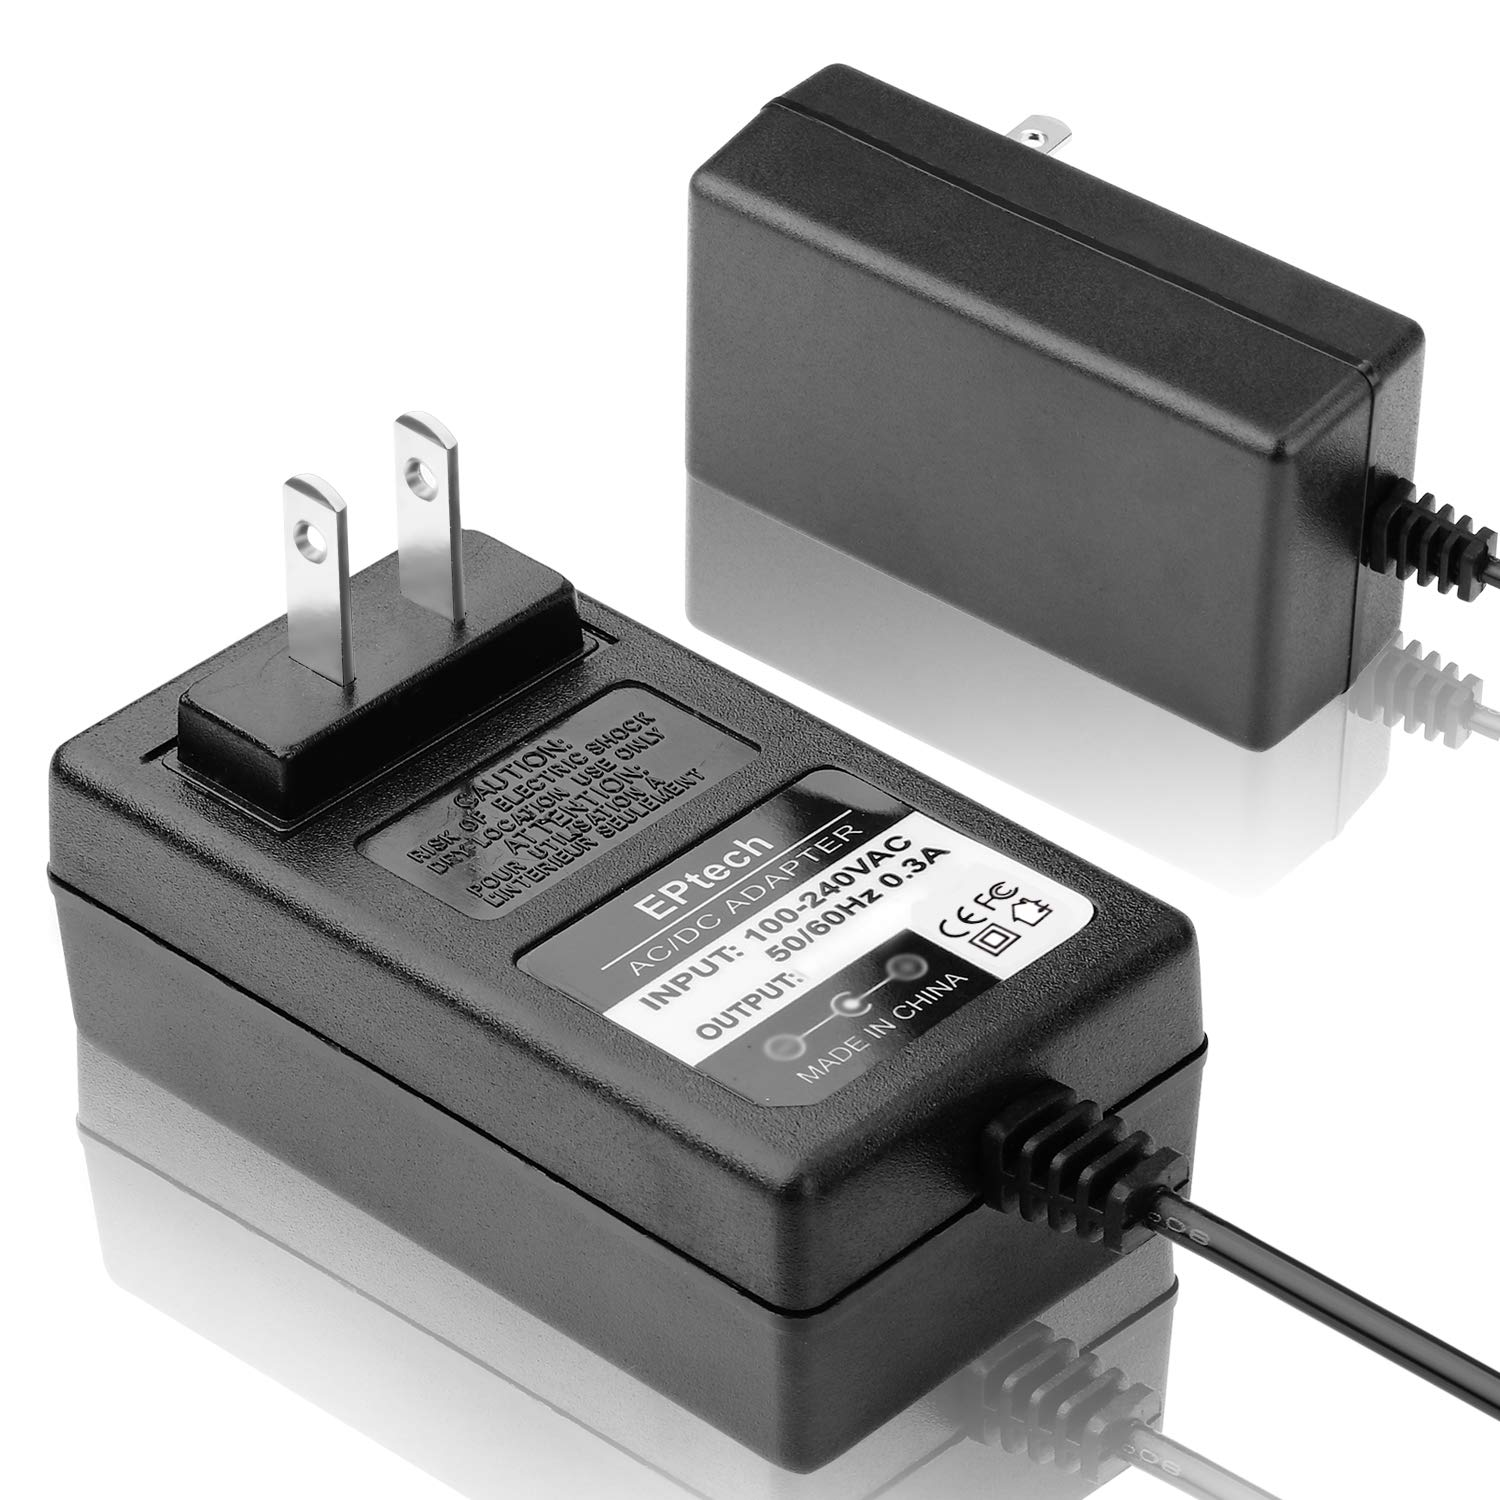 12V AC Adapter for Casio WK-1630 ad-12ul WK-3700 Piano PRIVIA PX-100 PX-110 PX-3